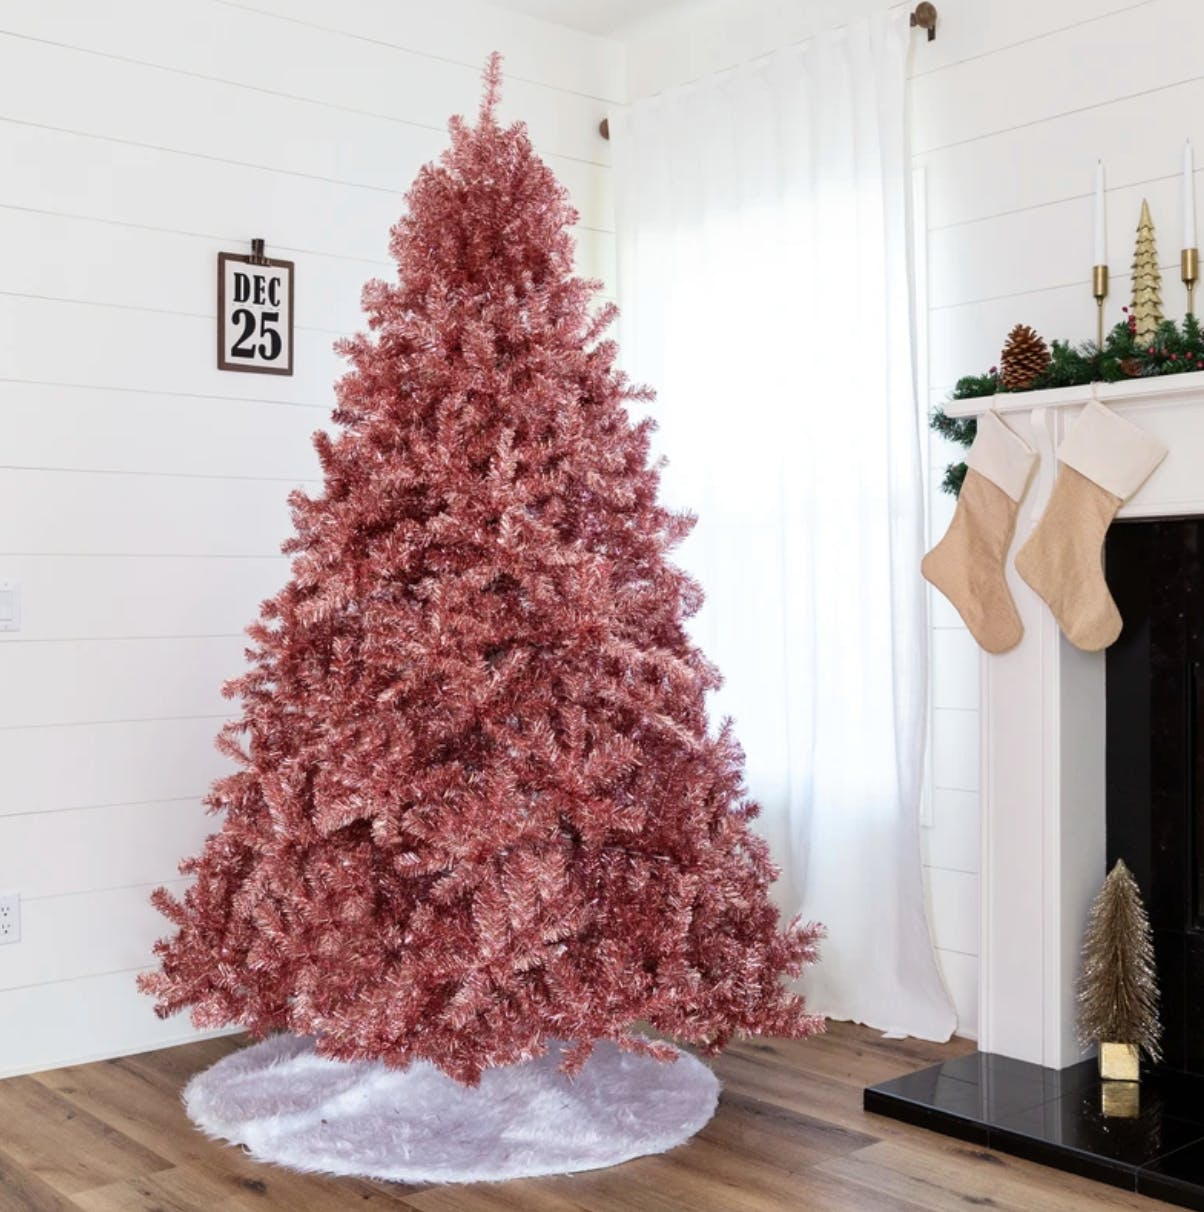 Black Friday Christmas Tree Online 2021 Best Holiday Black Friday Christmas Tree Deals 2020 Deals Still Available The Krazy Coupon Lady